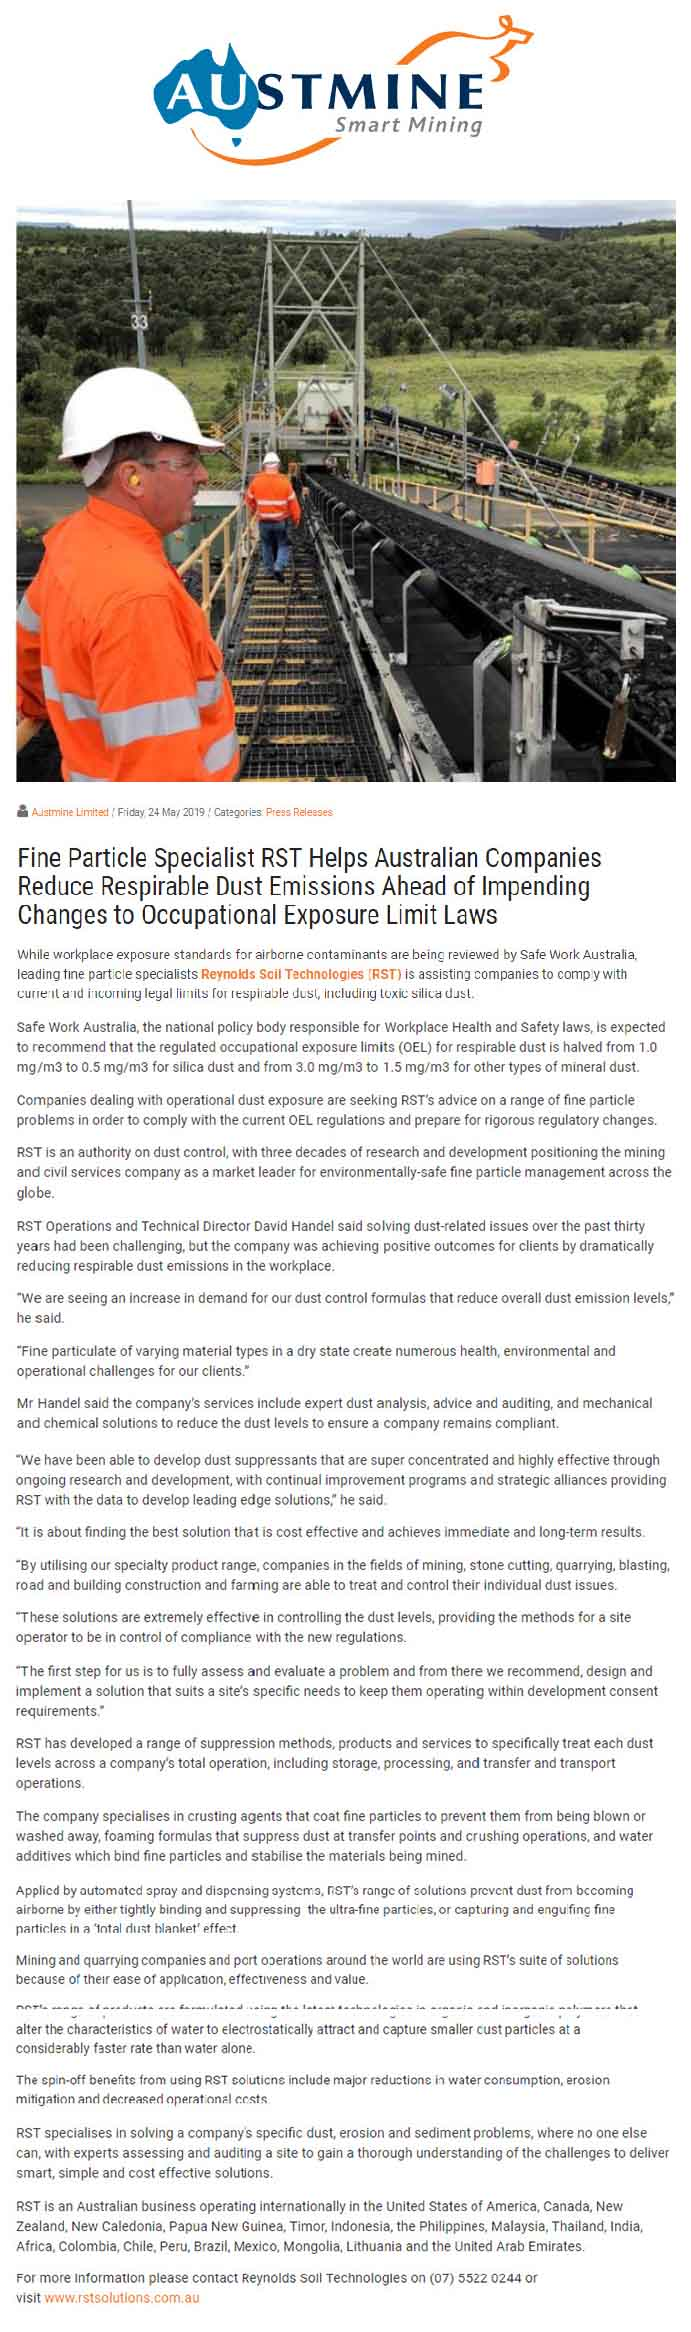 Fine Particle Specialist RST Helps Australian Companies Reduce Respirable Dust Emissions Ahead of Impending Changes to Occupational Exposure Limit Laws